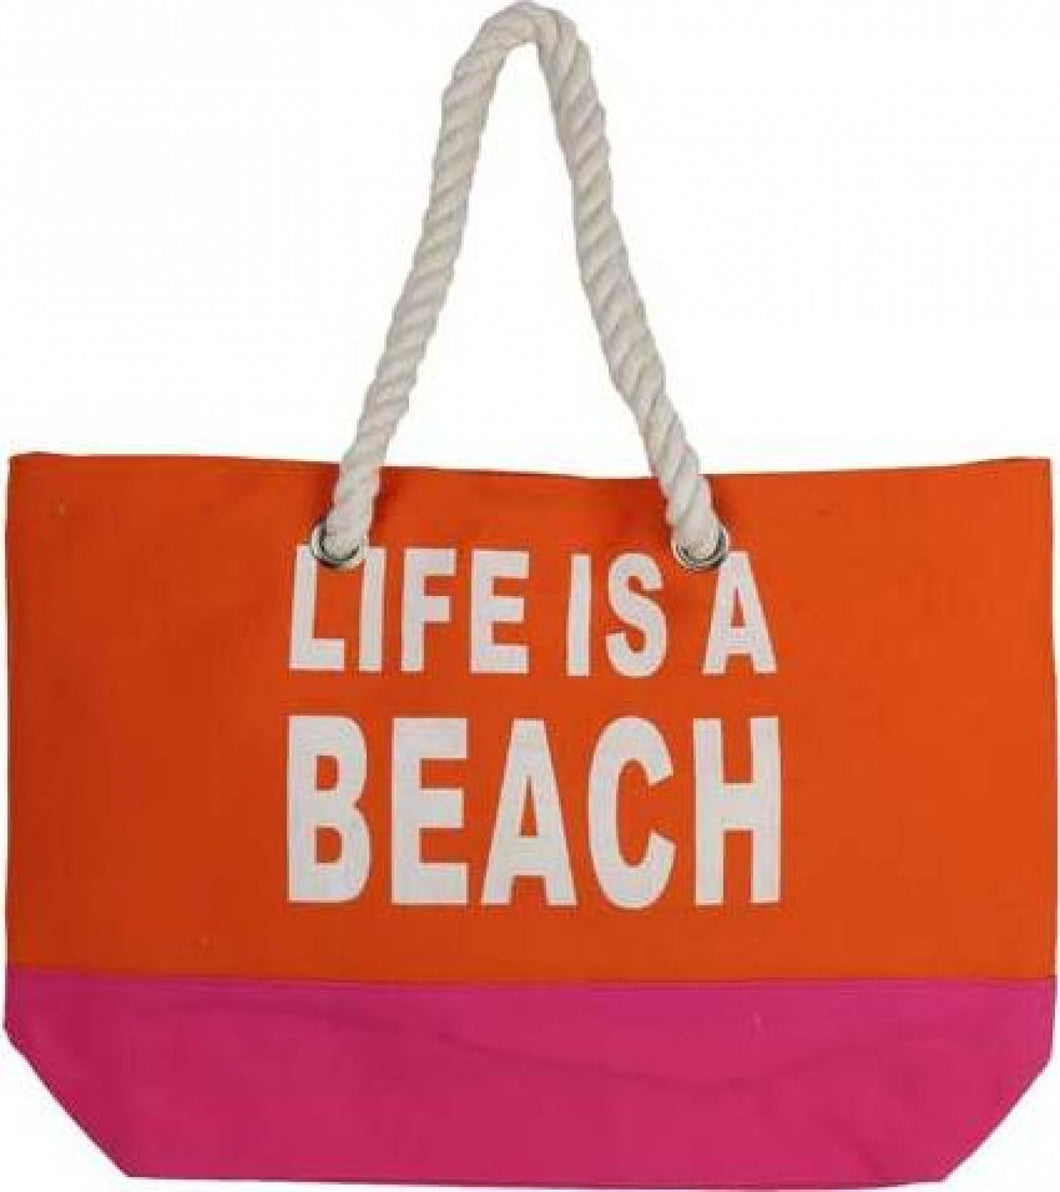 Beach Bag- Lifes a Beach